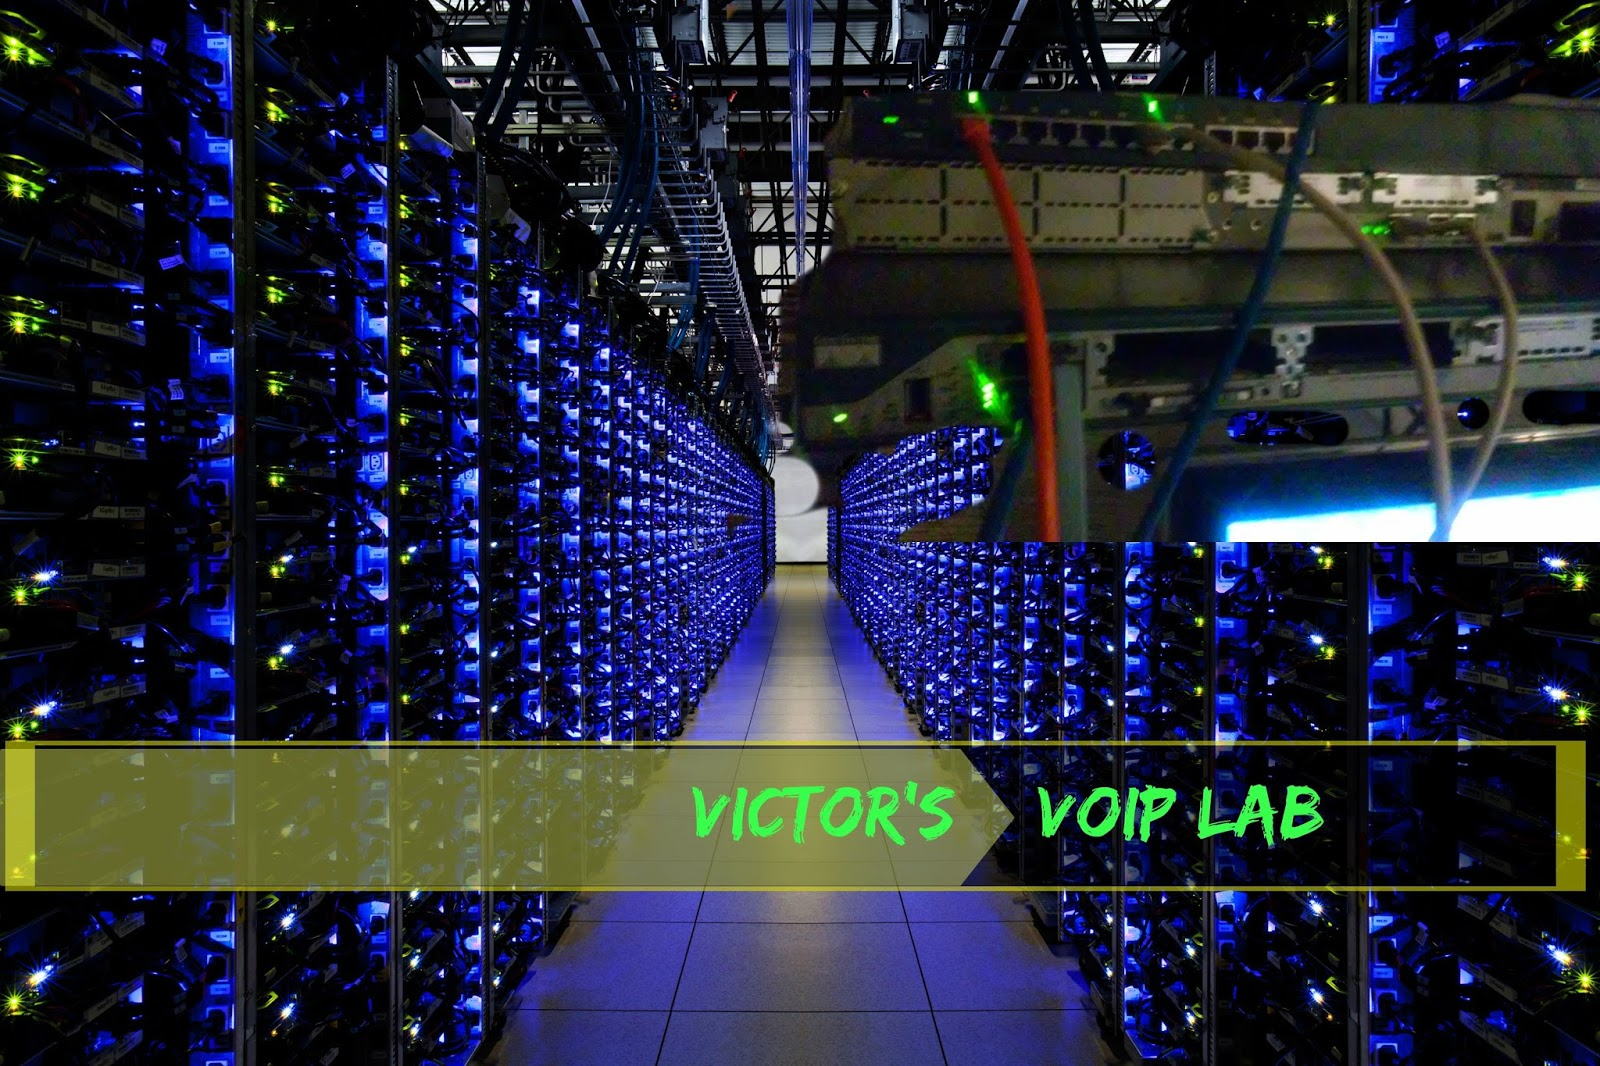 VOIP exercise - CCNA Voice lab